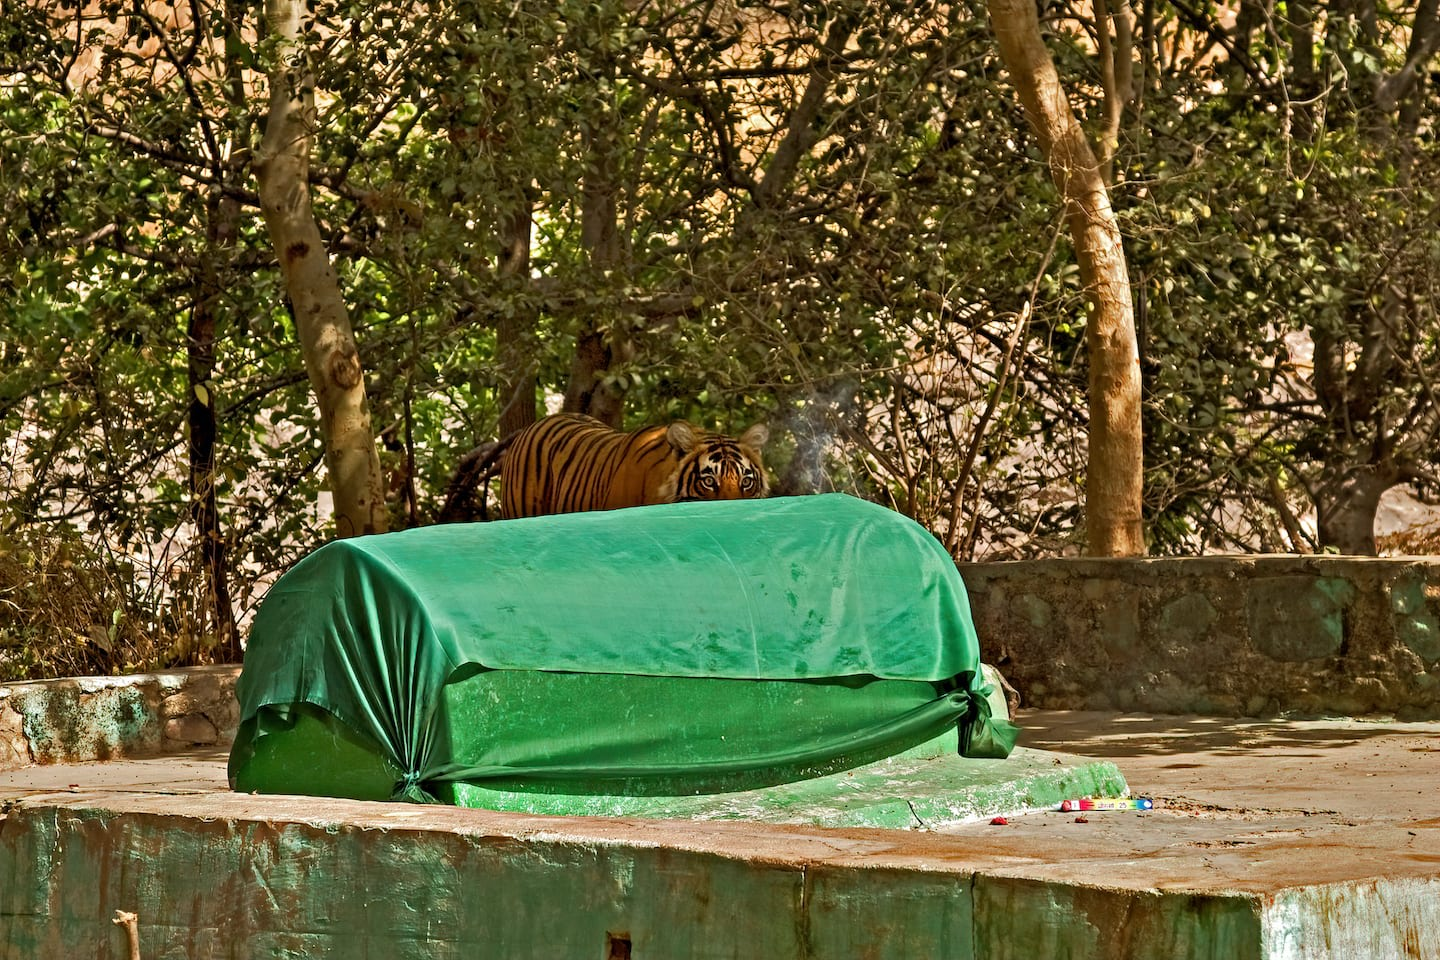 There is a grave of a Sufi saint by the side of the road to the Ranthambore fort and it is known as baba ki mazhaar. It is revered by a small groups of locals. There is a very pretty baori next to this grave with large trees all around, including a few of the species Litsea glutinosa or the Indian laurel tree — a rainforest tree in the semi-arid Ranthambore! The trees were recently identified by botanists Dr Satish Sharma and Dr Dharmendra Khandal. Its presence in Ranthambore is nothing short of a miracle.